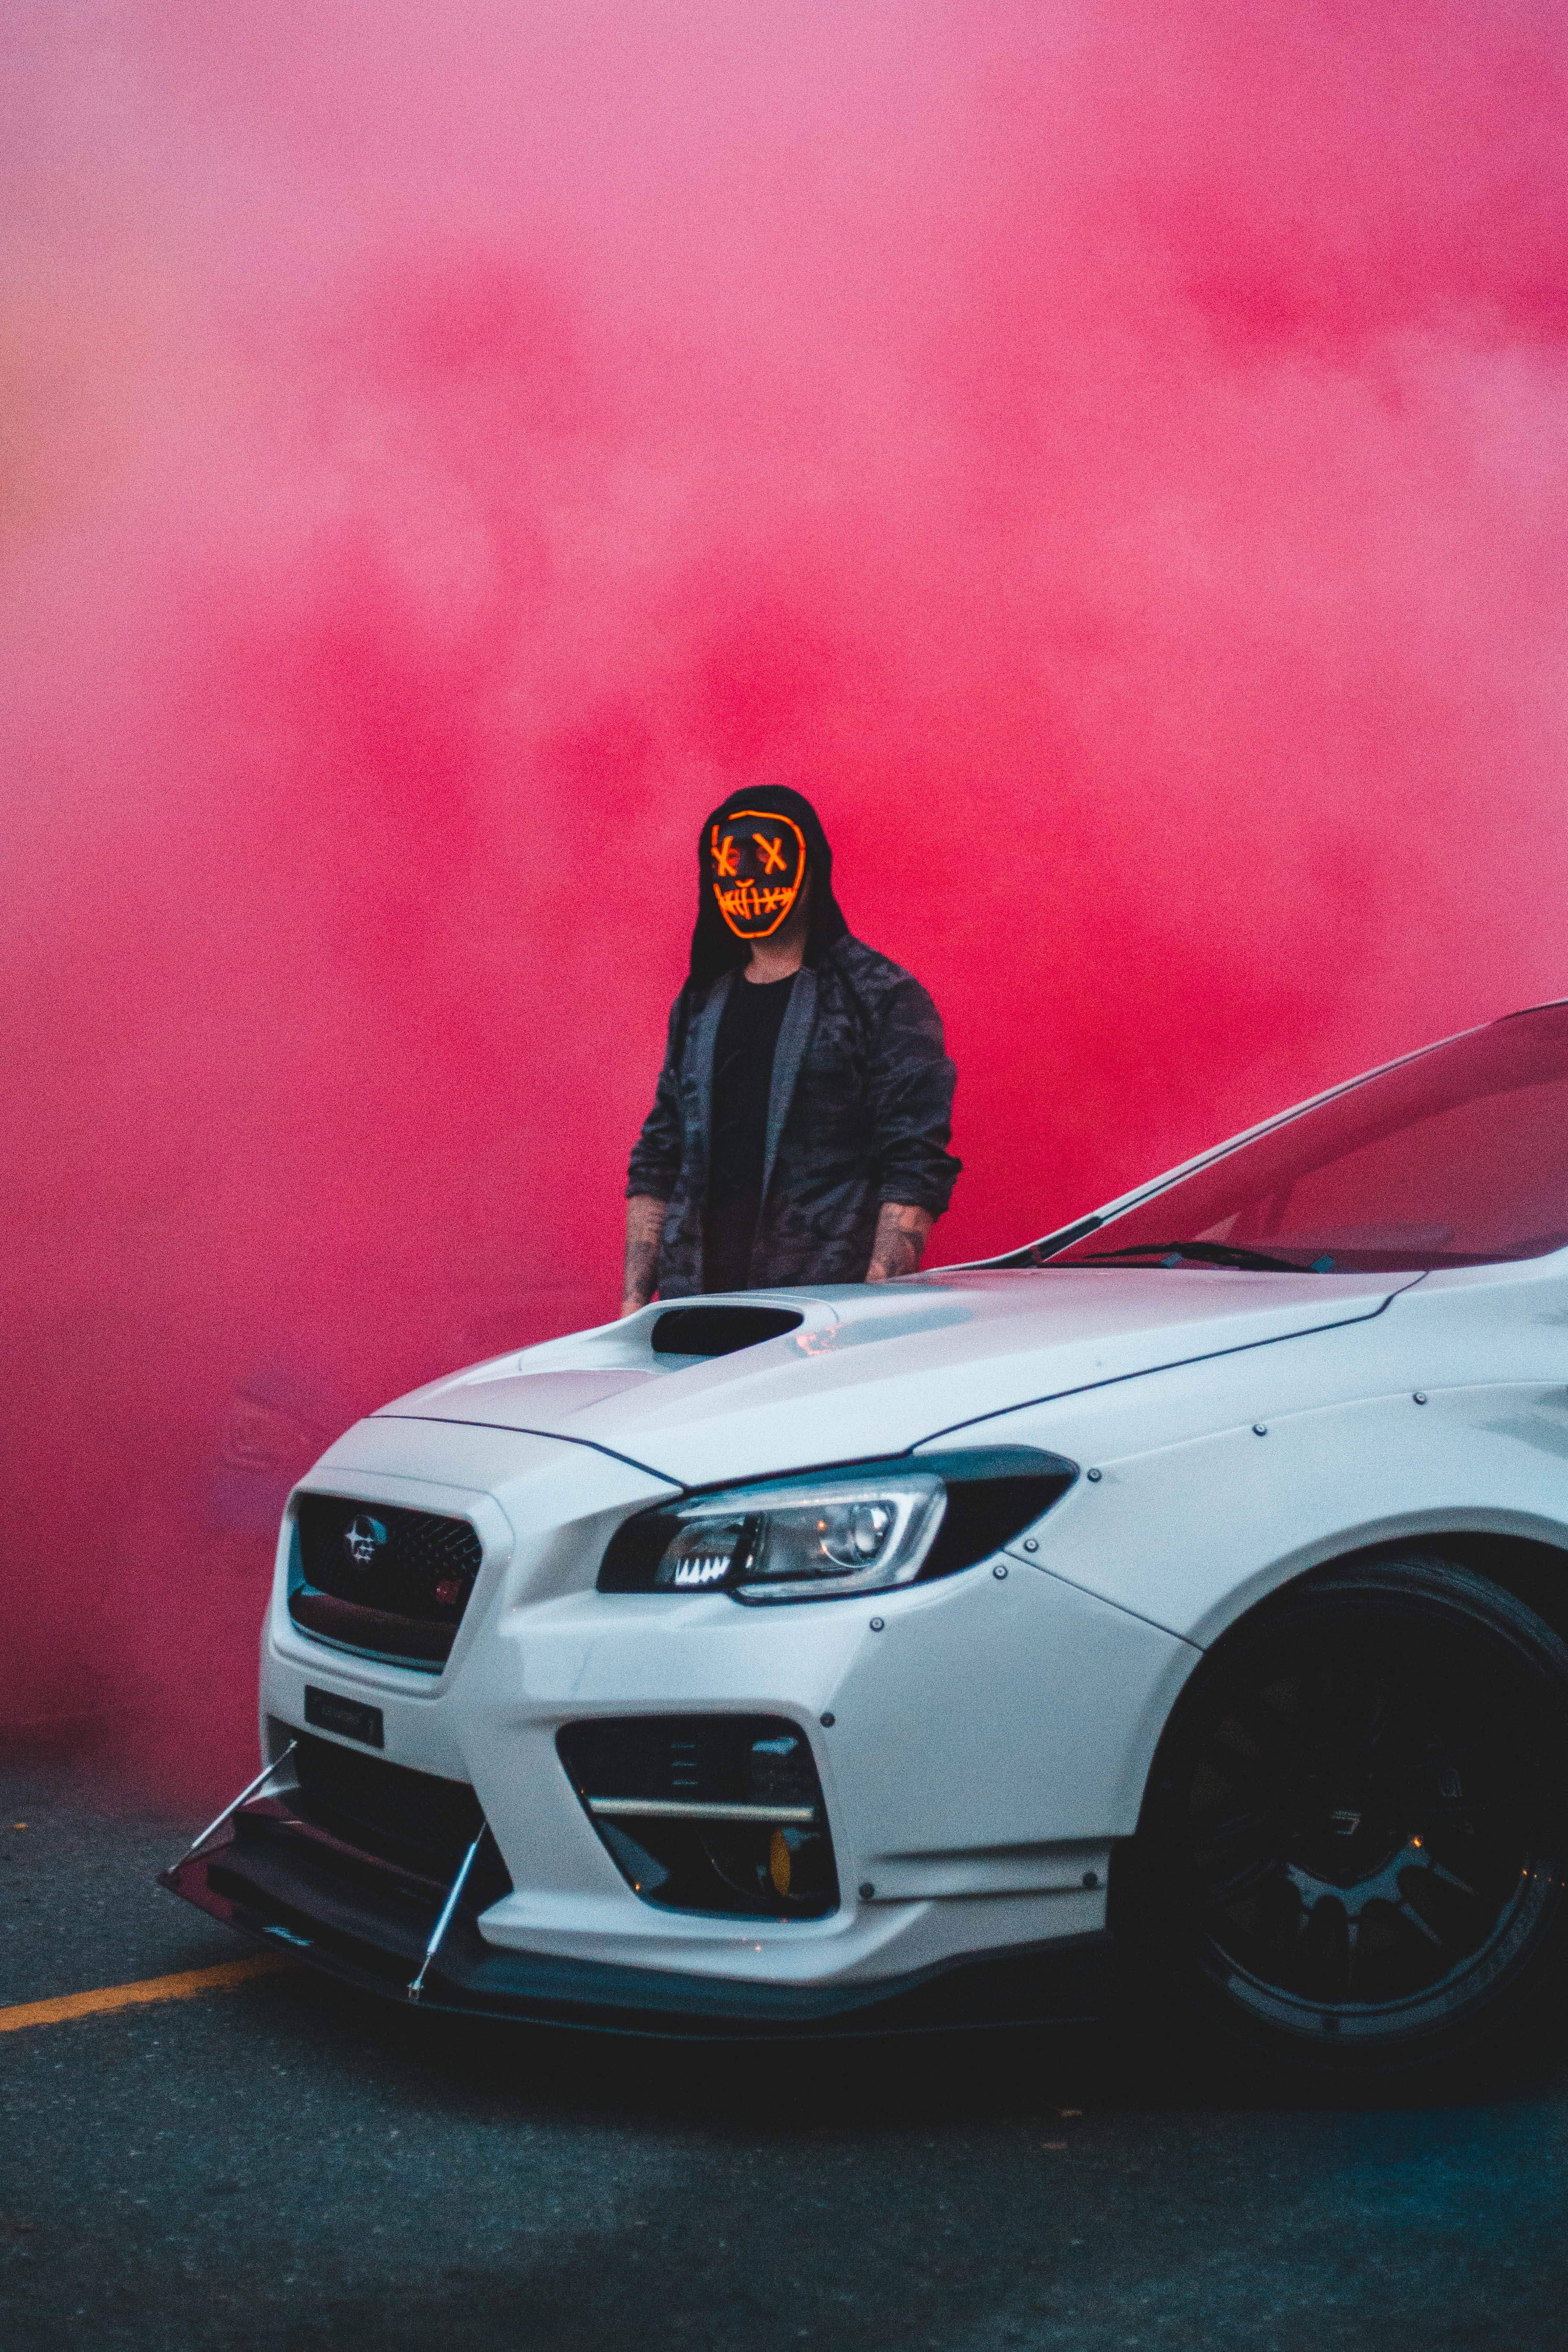 141416 download wallpaper Cars, Human, Person, Mask, Car, Machine, Cloud, Smoke screensavers and pictures for free